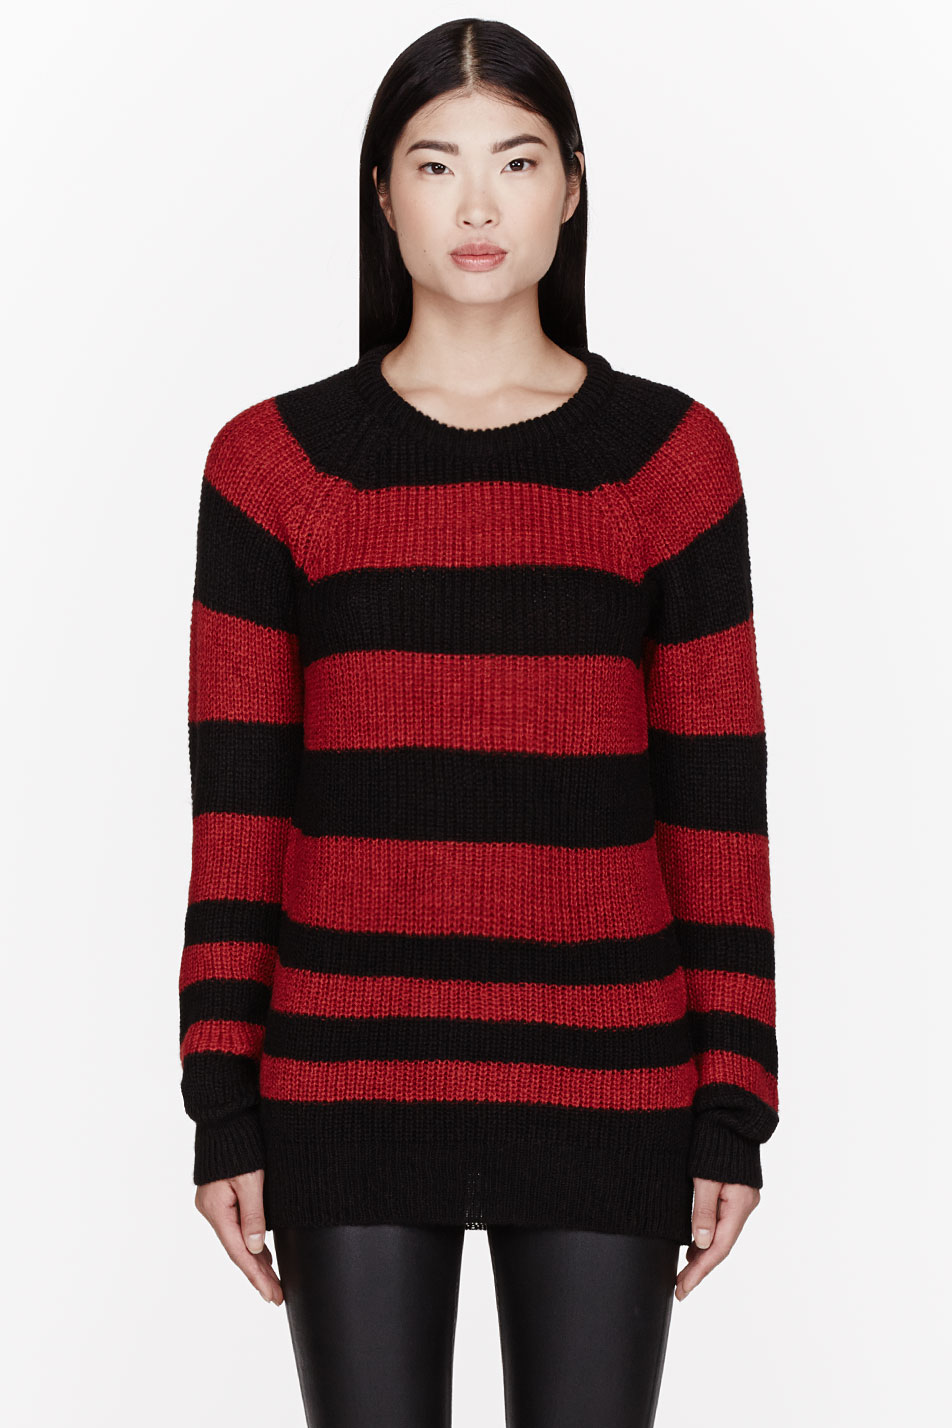 Kappa long sleeve stripe jumper in red & black. £ ellesse knitted jumper with bold block stripes. £ Lindbergh crew neck jumper with breton stripe in navy. £ Original Penguin tipped cuff textured crewneck knit jumper small logo in navy. £